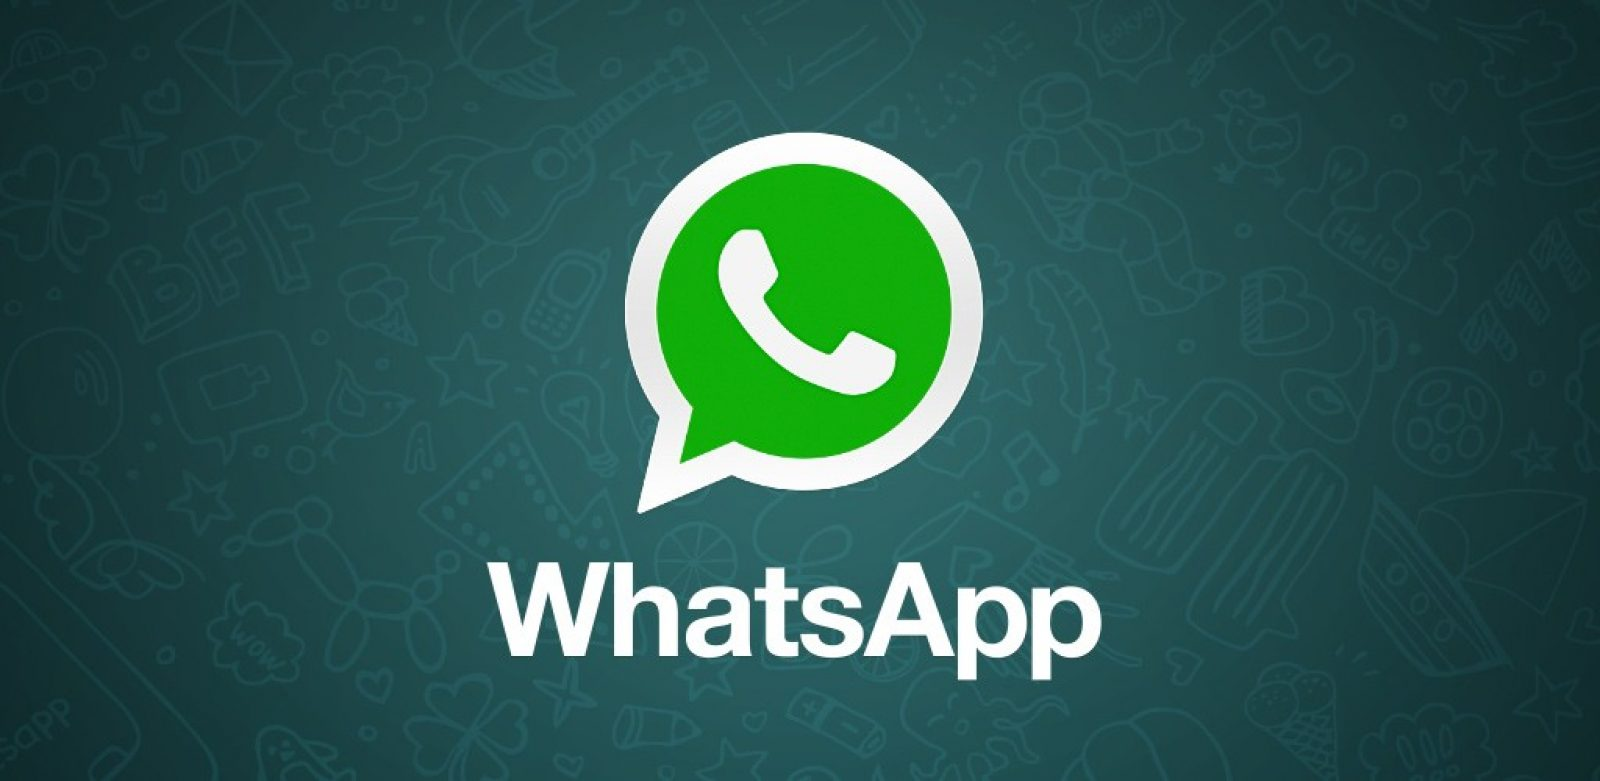 IF YOU DON'T ACCEPT WHATSAPP'S NEW PRIVACY POLICY